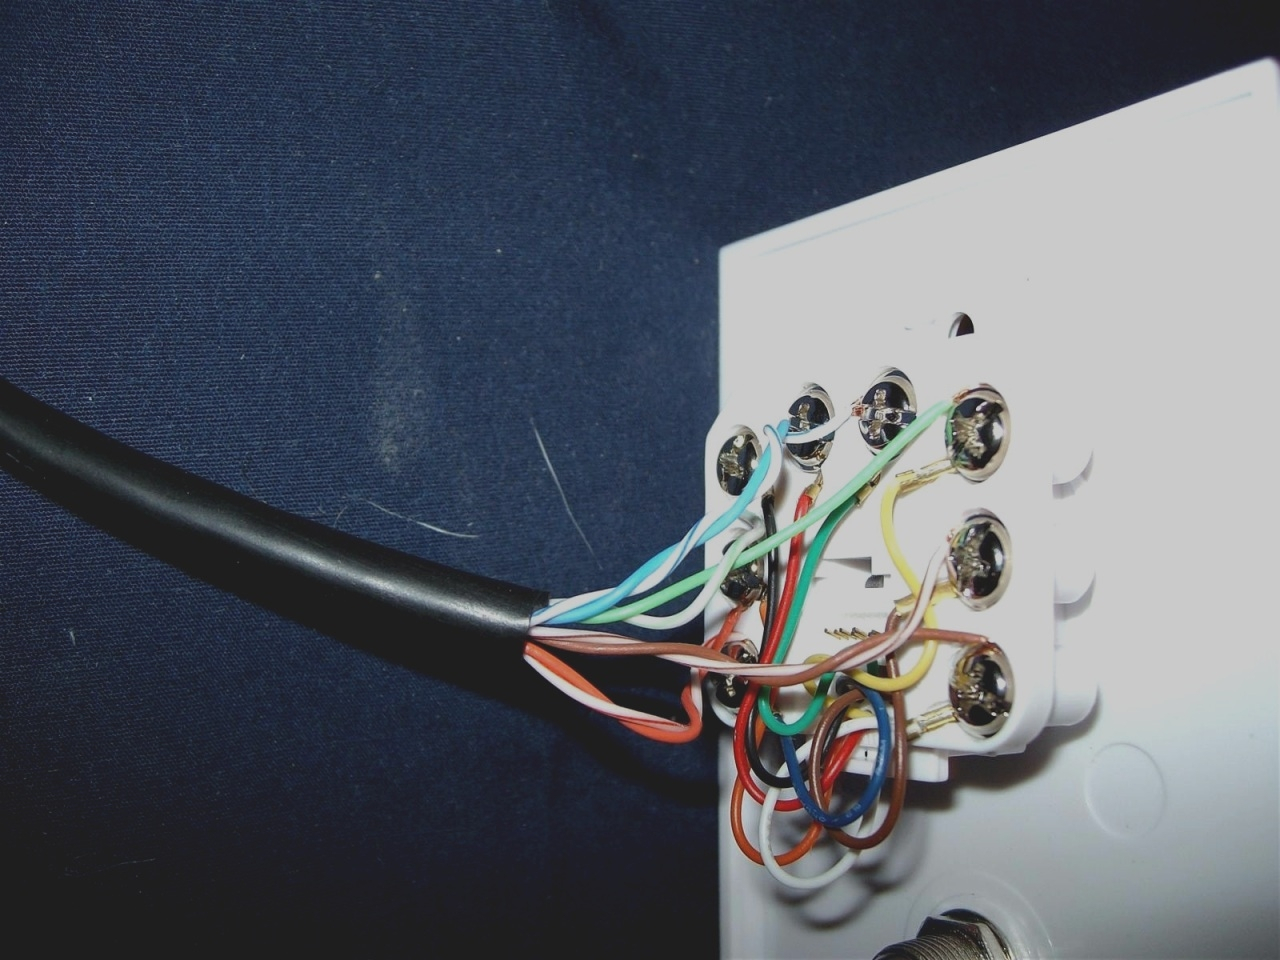 Cat 5e Wiring Diagram For Wall Plates